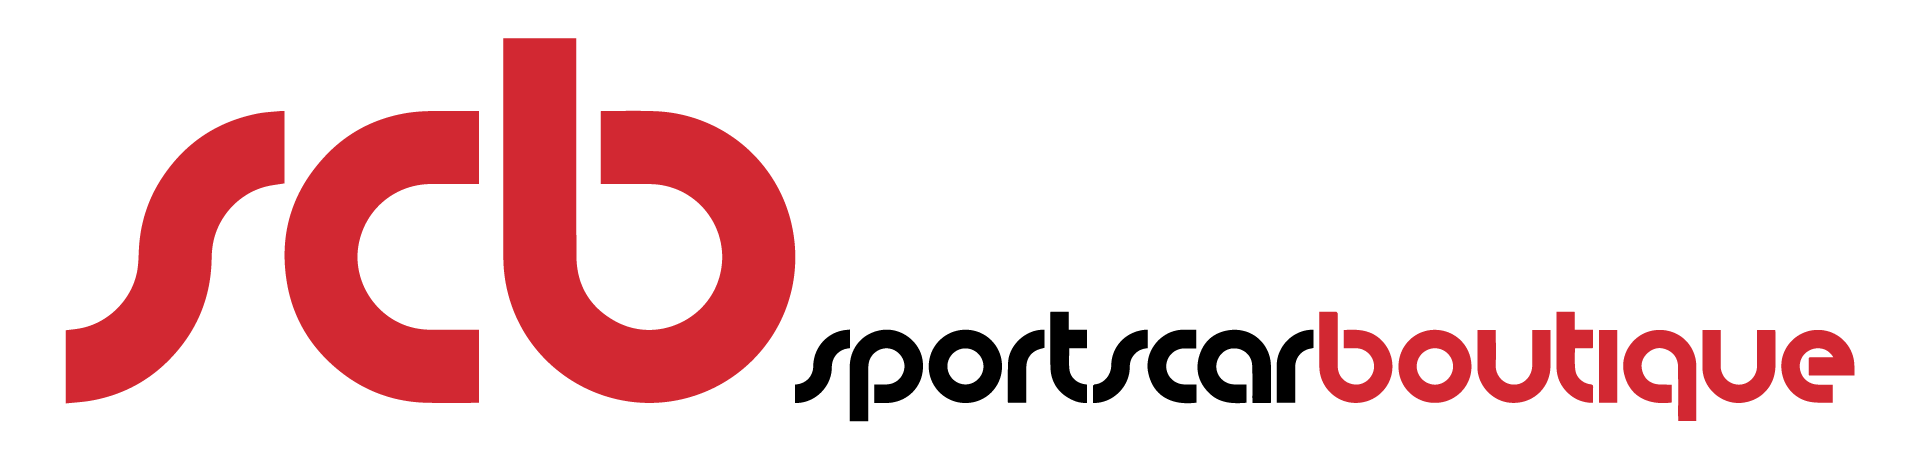 SportsCarBoutique